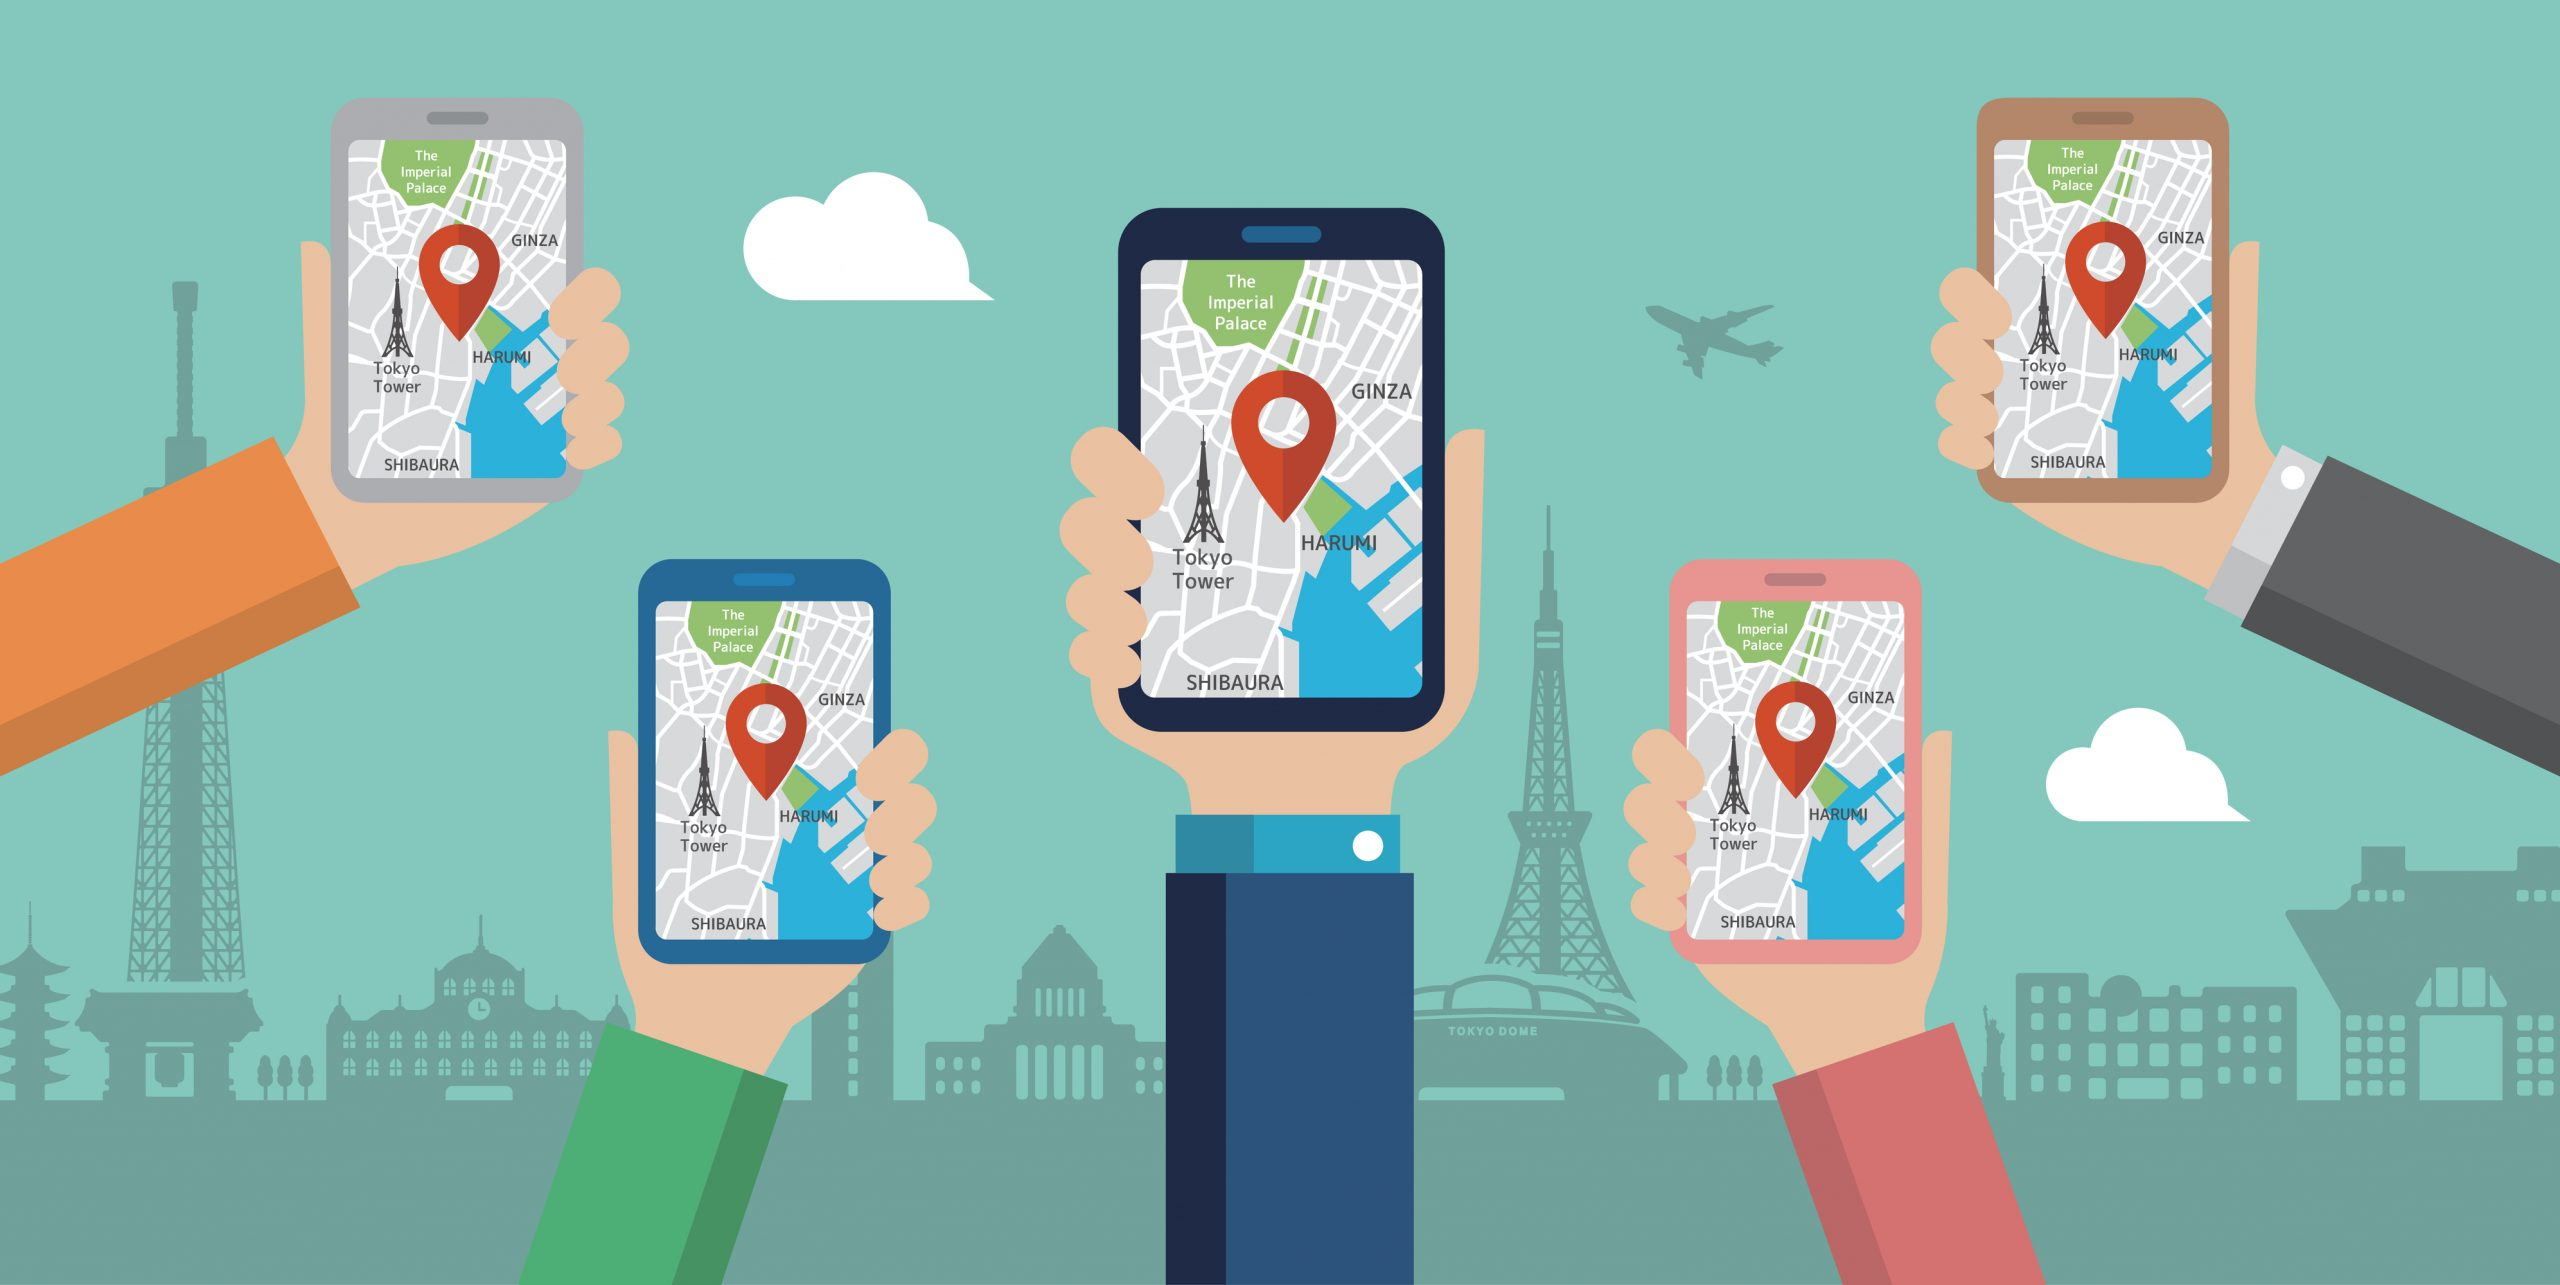 Mobile users holding up smartphones with google maps open